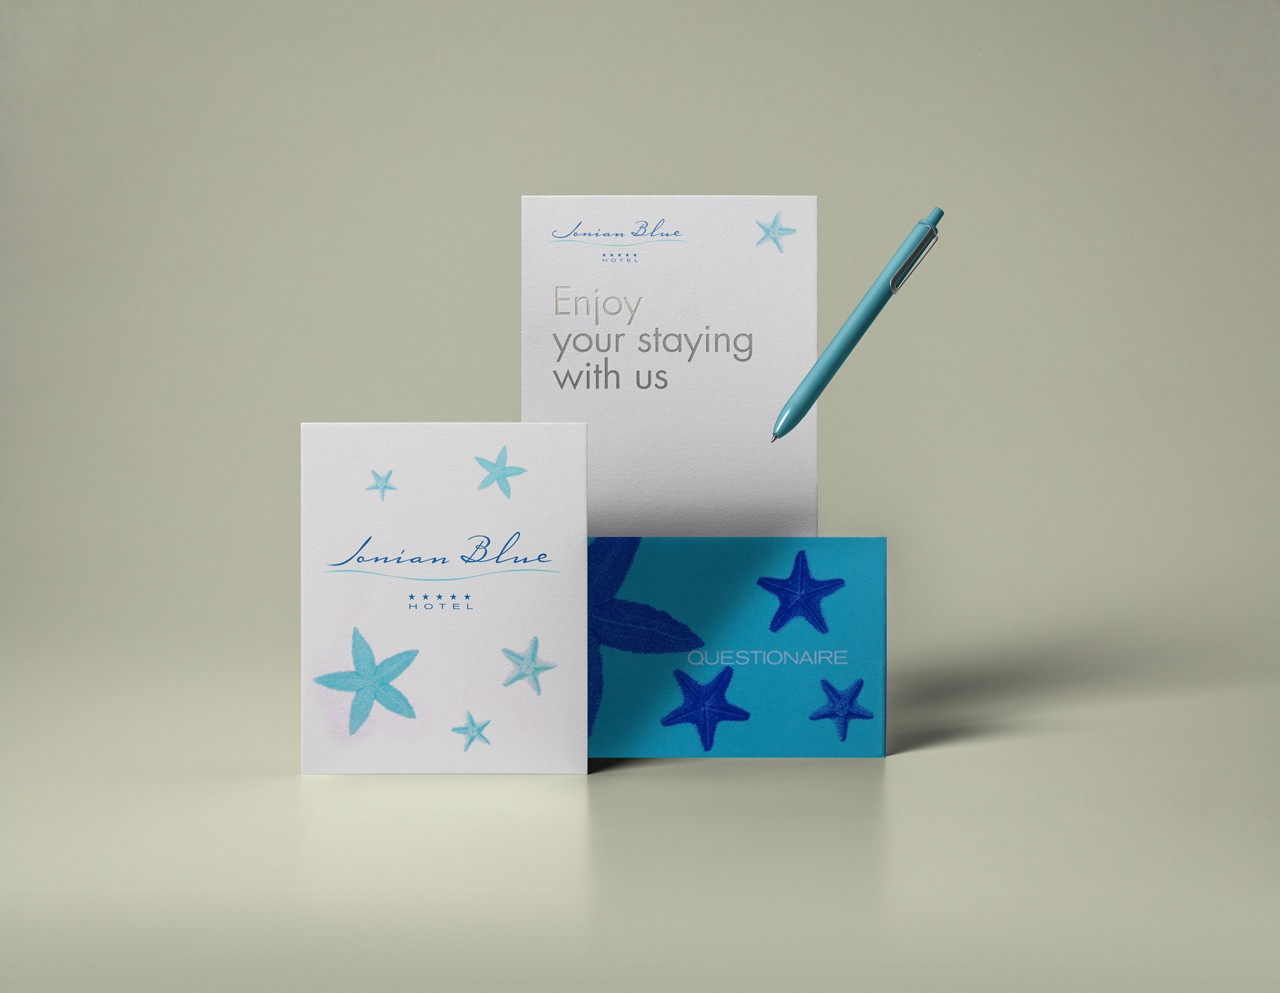 Ionian Blue Hotel stationery design